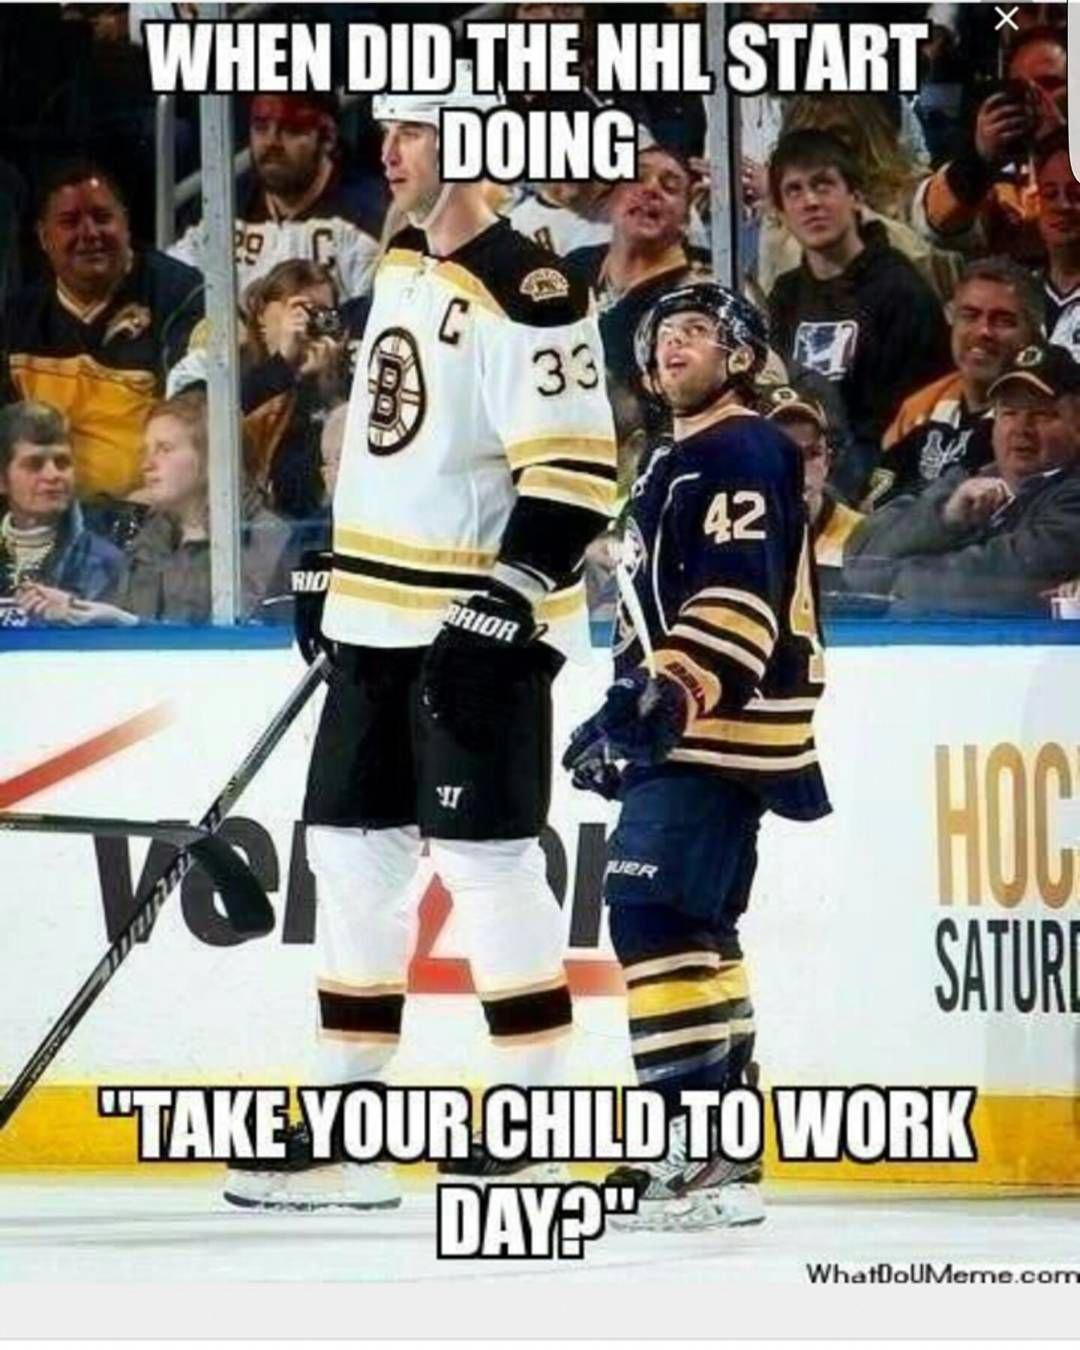 Nhl Jokes Tag A Bud Who D Laugh At This Follow Puckland For Amazing Hockey Videos And Memes Puckland Puck Hockey Humor Funny Hockey Memes Hockey Memes